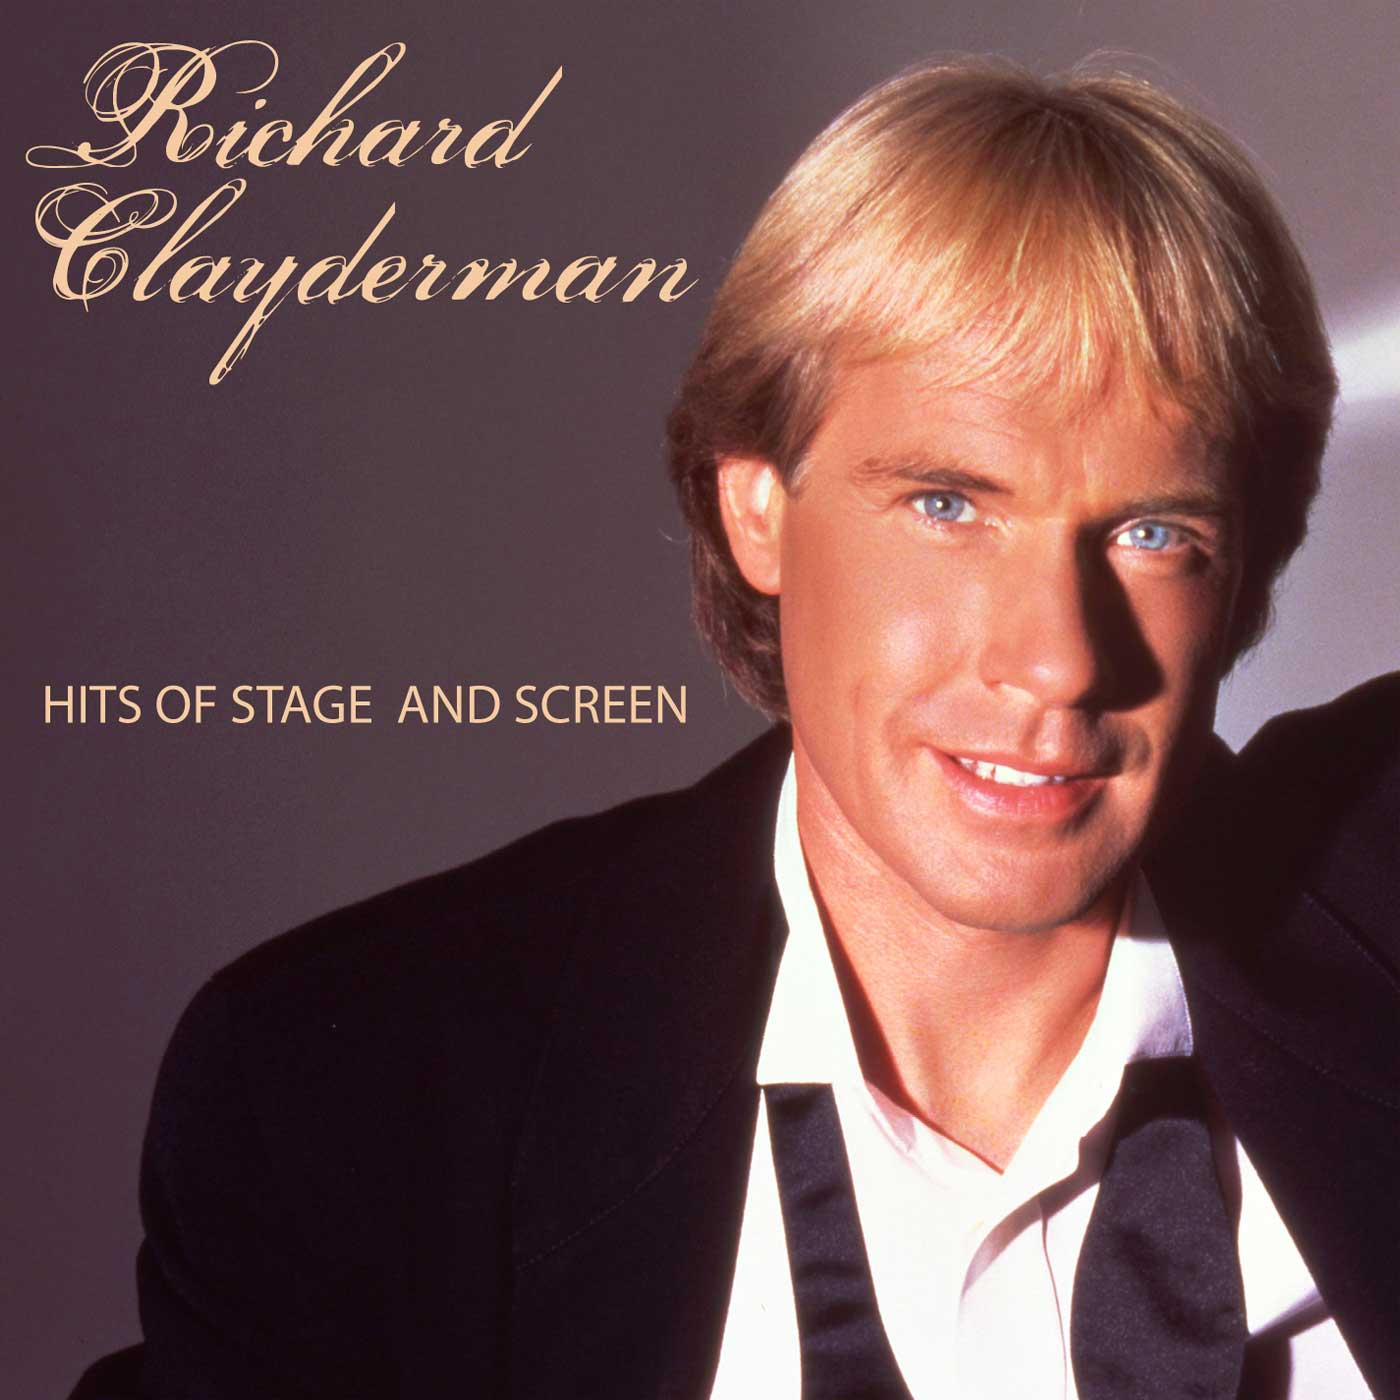 FANFARE008---RICHARD-CLAYDERMAN---HITS-OF-STAGE-AND-SCREEN.jpg